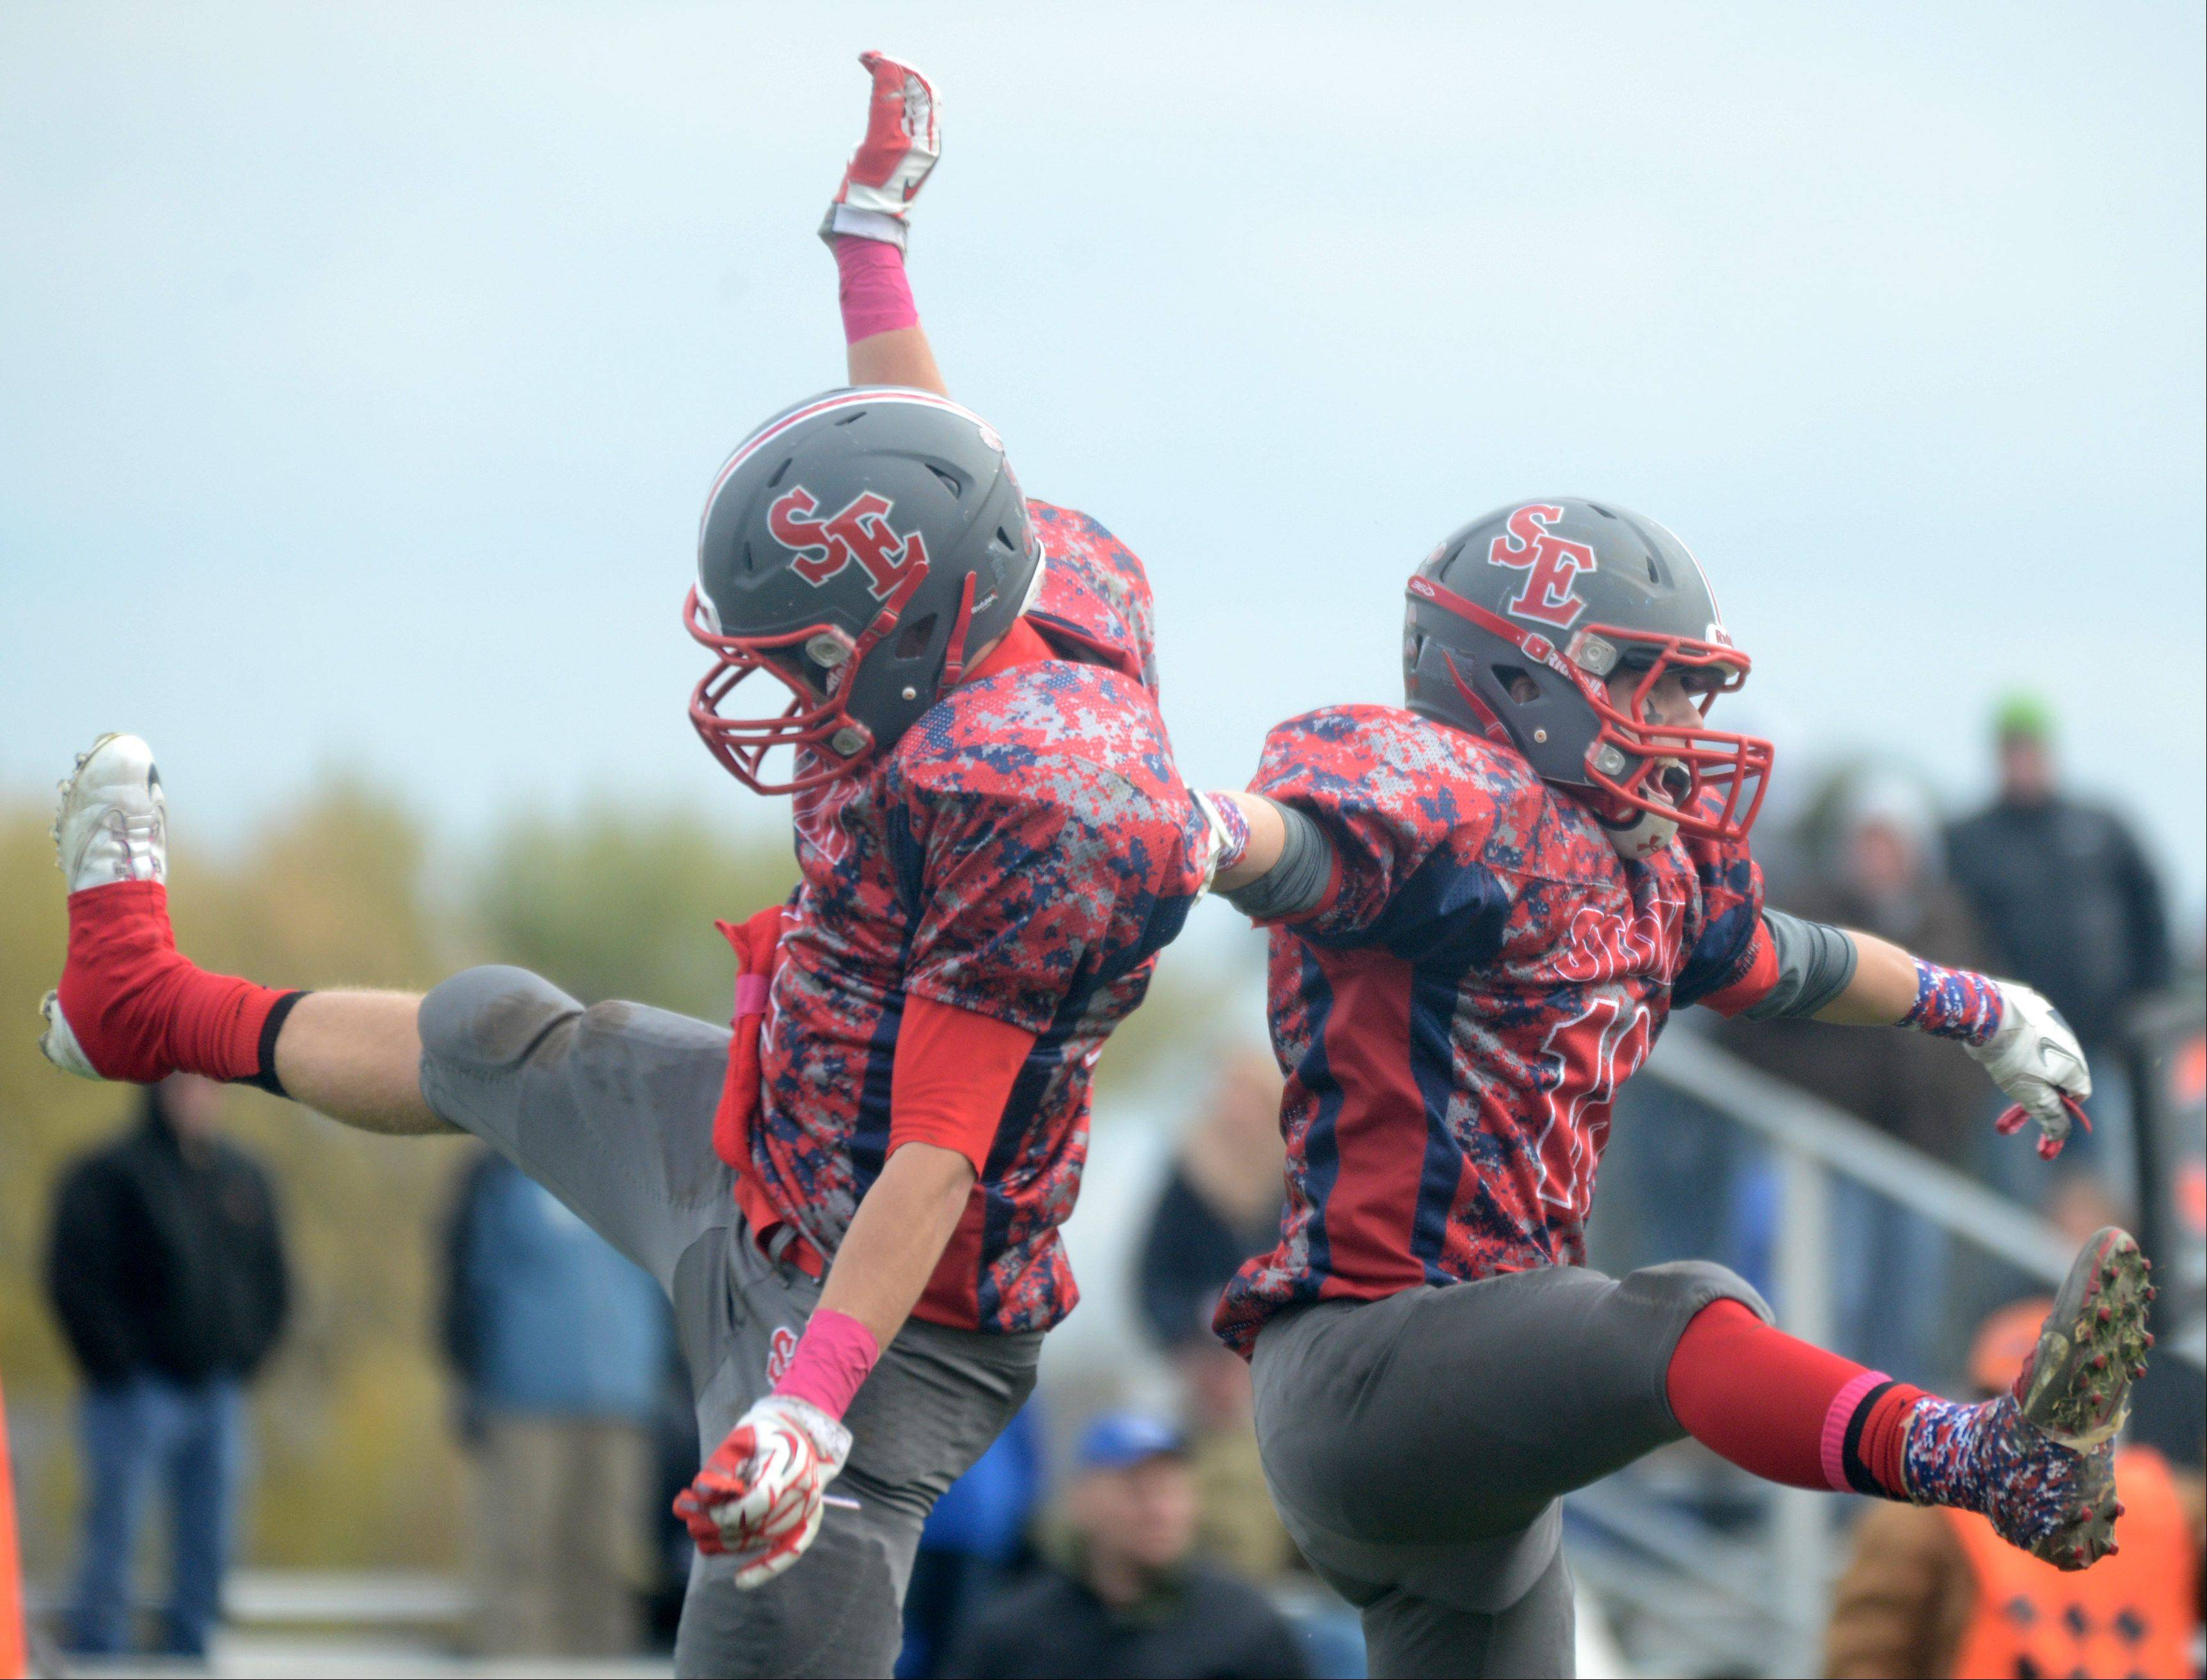 South Elgin's Andrew Kamienski, left, and Nick Menken, right, celebrate a Menken touchdown reception against St. Charles North during a varsity football game at South Elgin on Saturday.